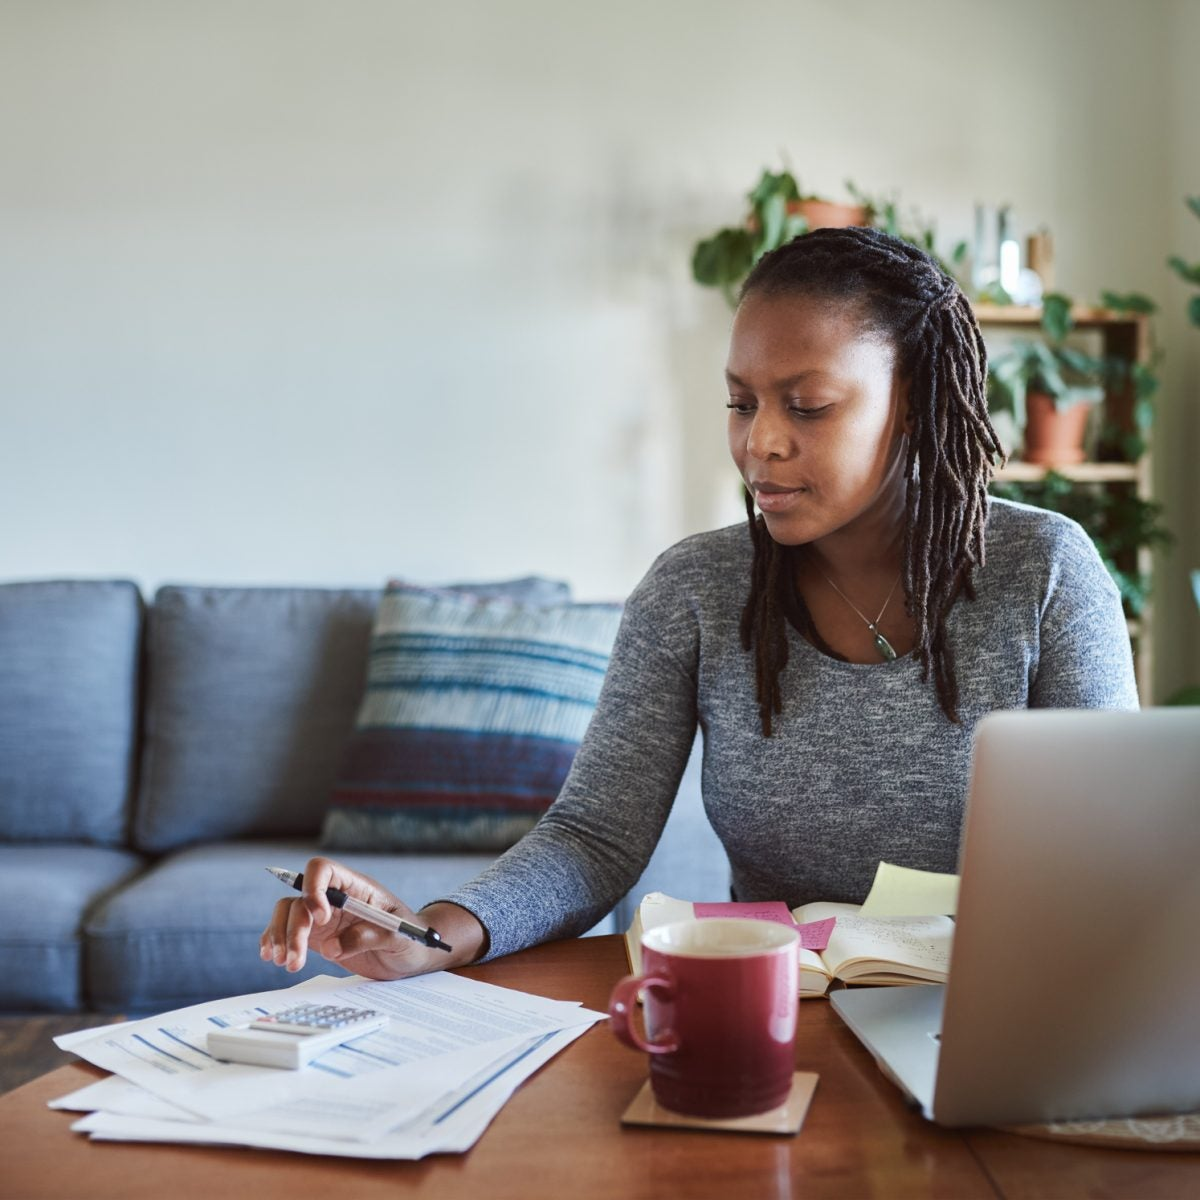 5 Things You Should Know About Having Your Student Loans Forgiven In The PSFL Program